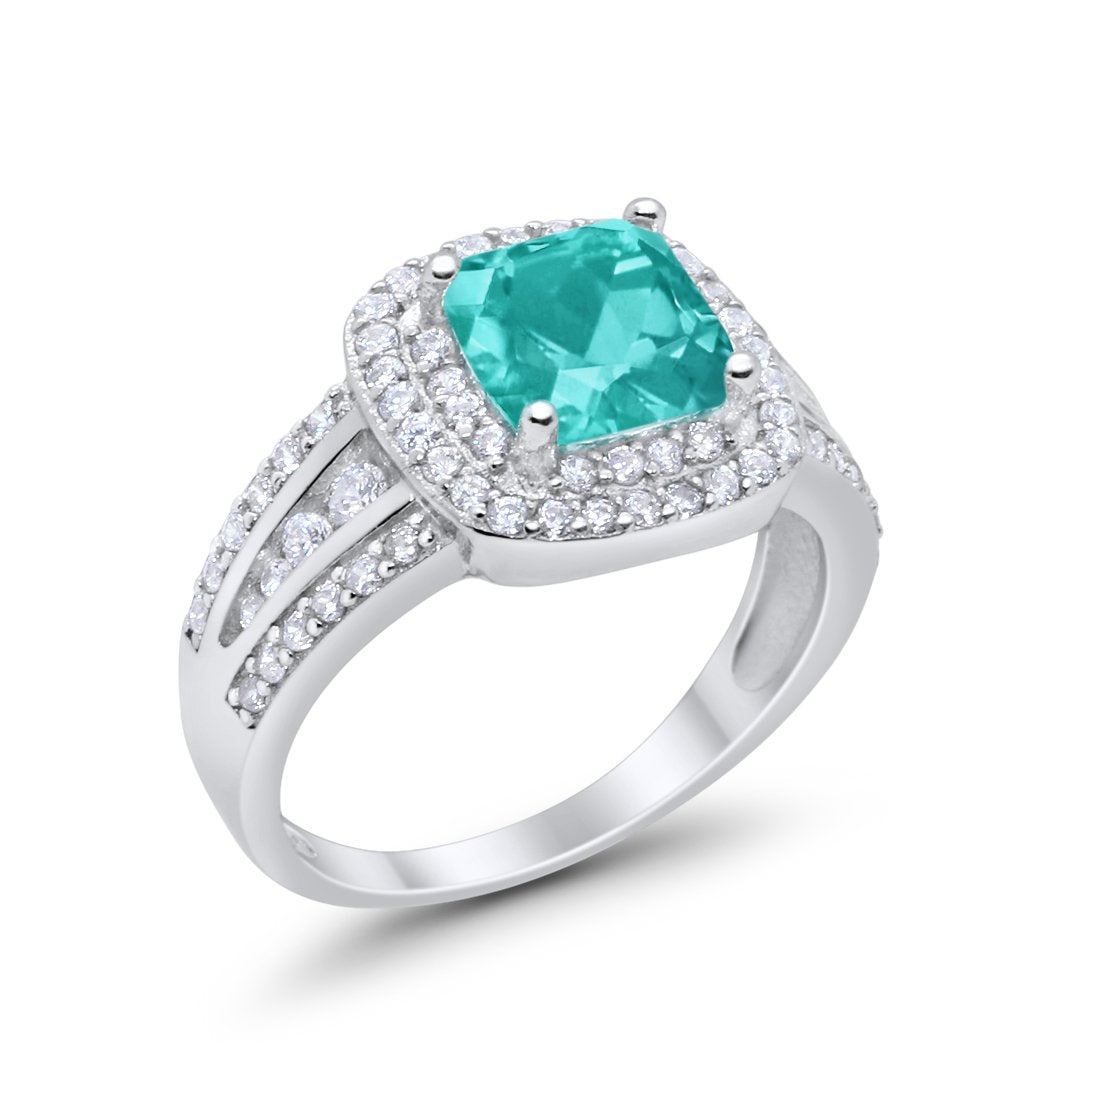 Halo Art Deco Wedding Ring Princess Cut Round Simulated Paraiba Tourmaline CZ 925 Sterling Silver